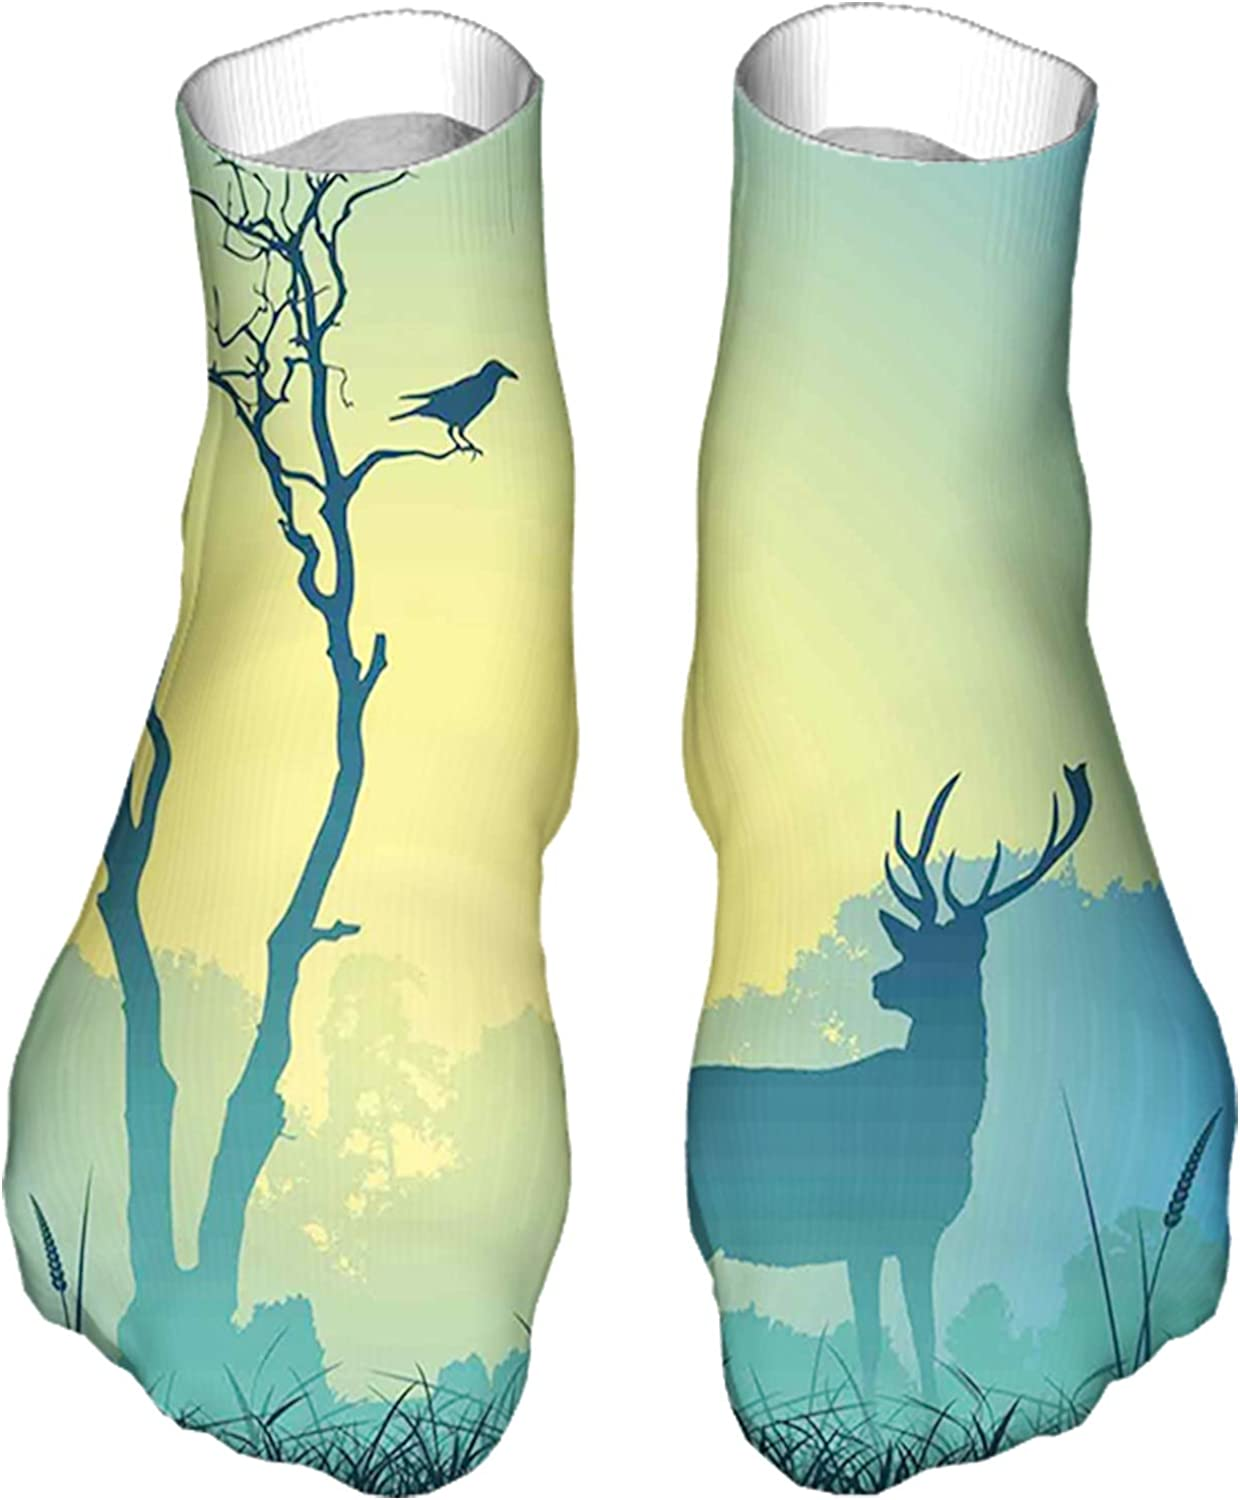 Men's and Women's Fun Socks Printed Cool Novelty Funny Socks,Male Stag Deer on a Meadow with Trees and Bird Foggy